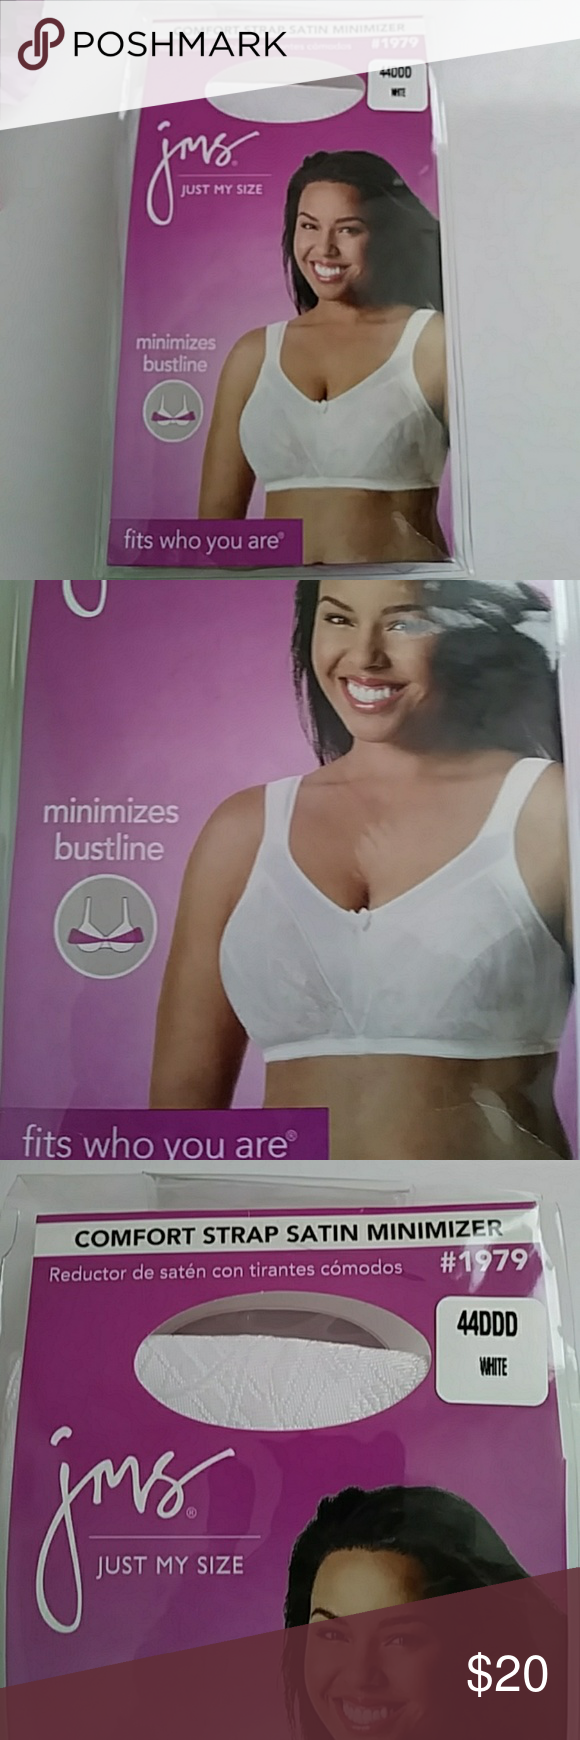 523972b31017e Just My Size JMS Satin Minimizer Bra Just My Size Comfort strap satin  minimizer. Minimizes